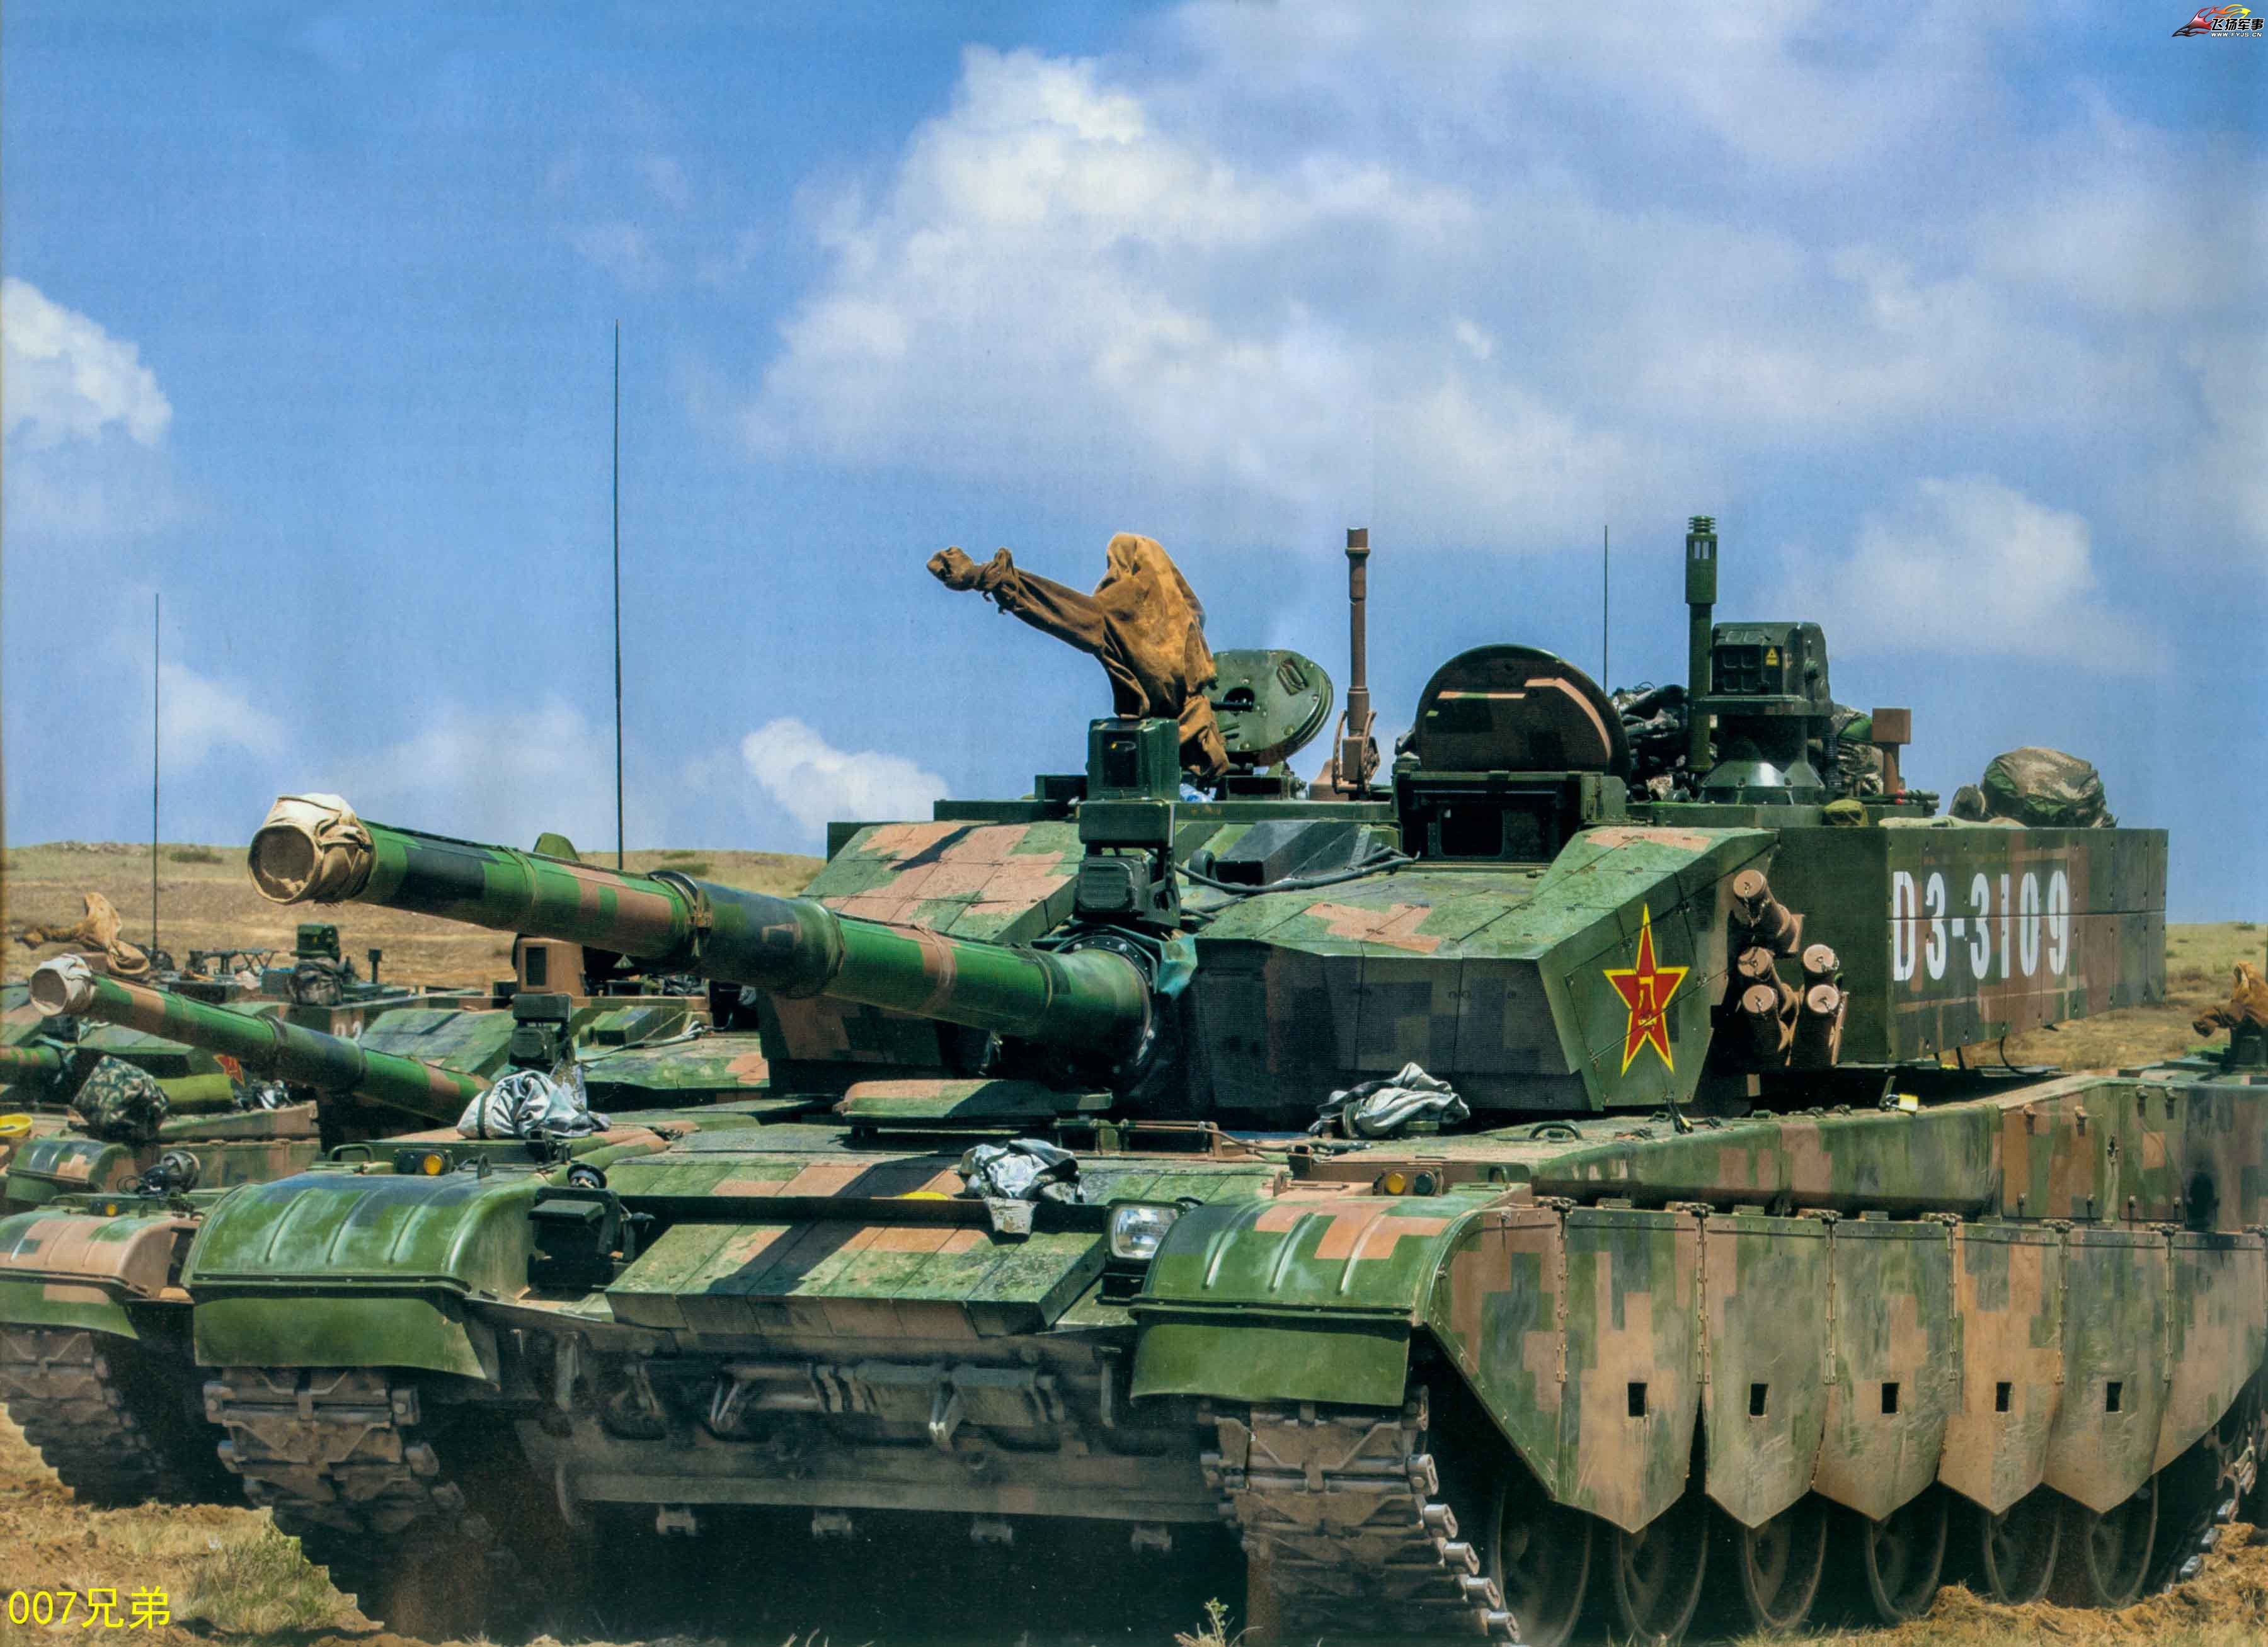 The Type 99A2 Main Battle Tank